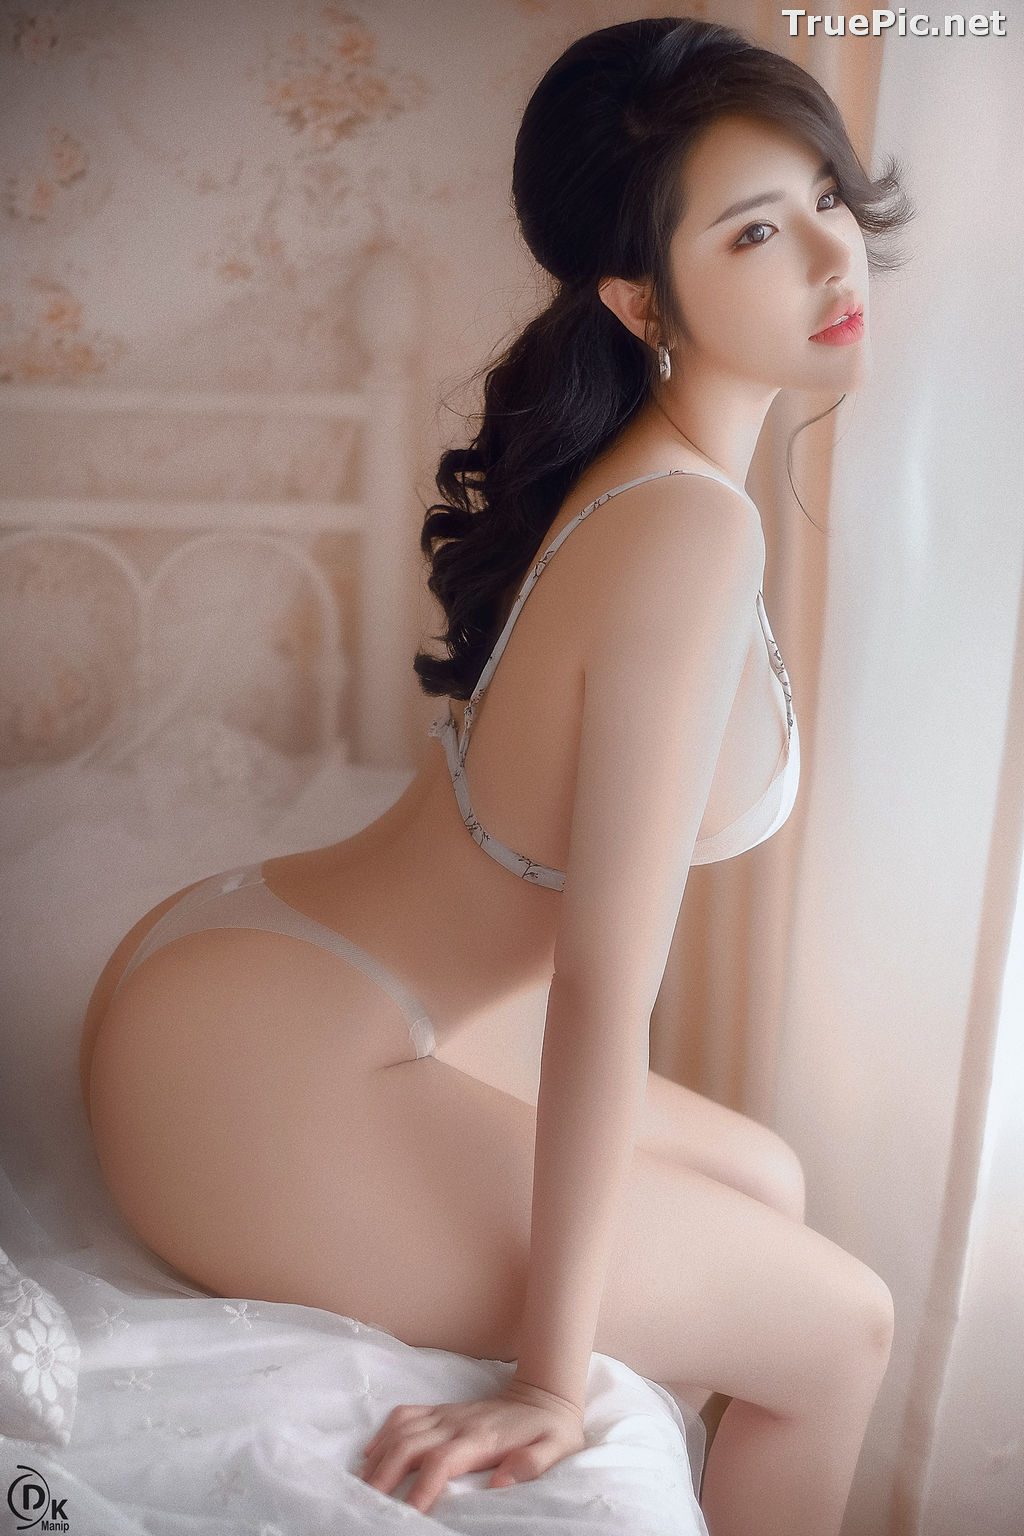 Image Vietnamese Model - Beautiful Girl in Sexy Transparent White Lingerie - TruePic.net - Picture-8